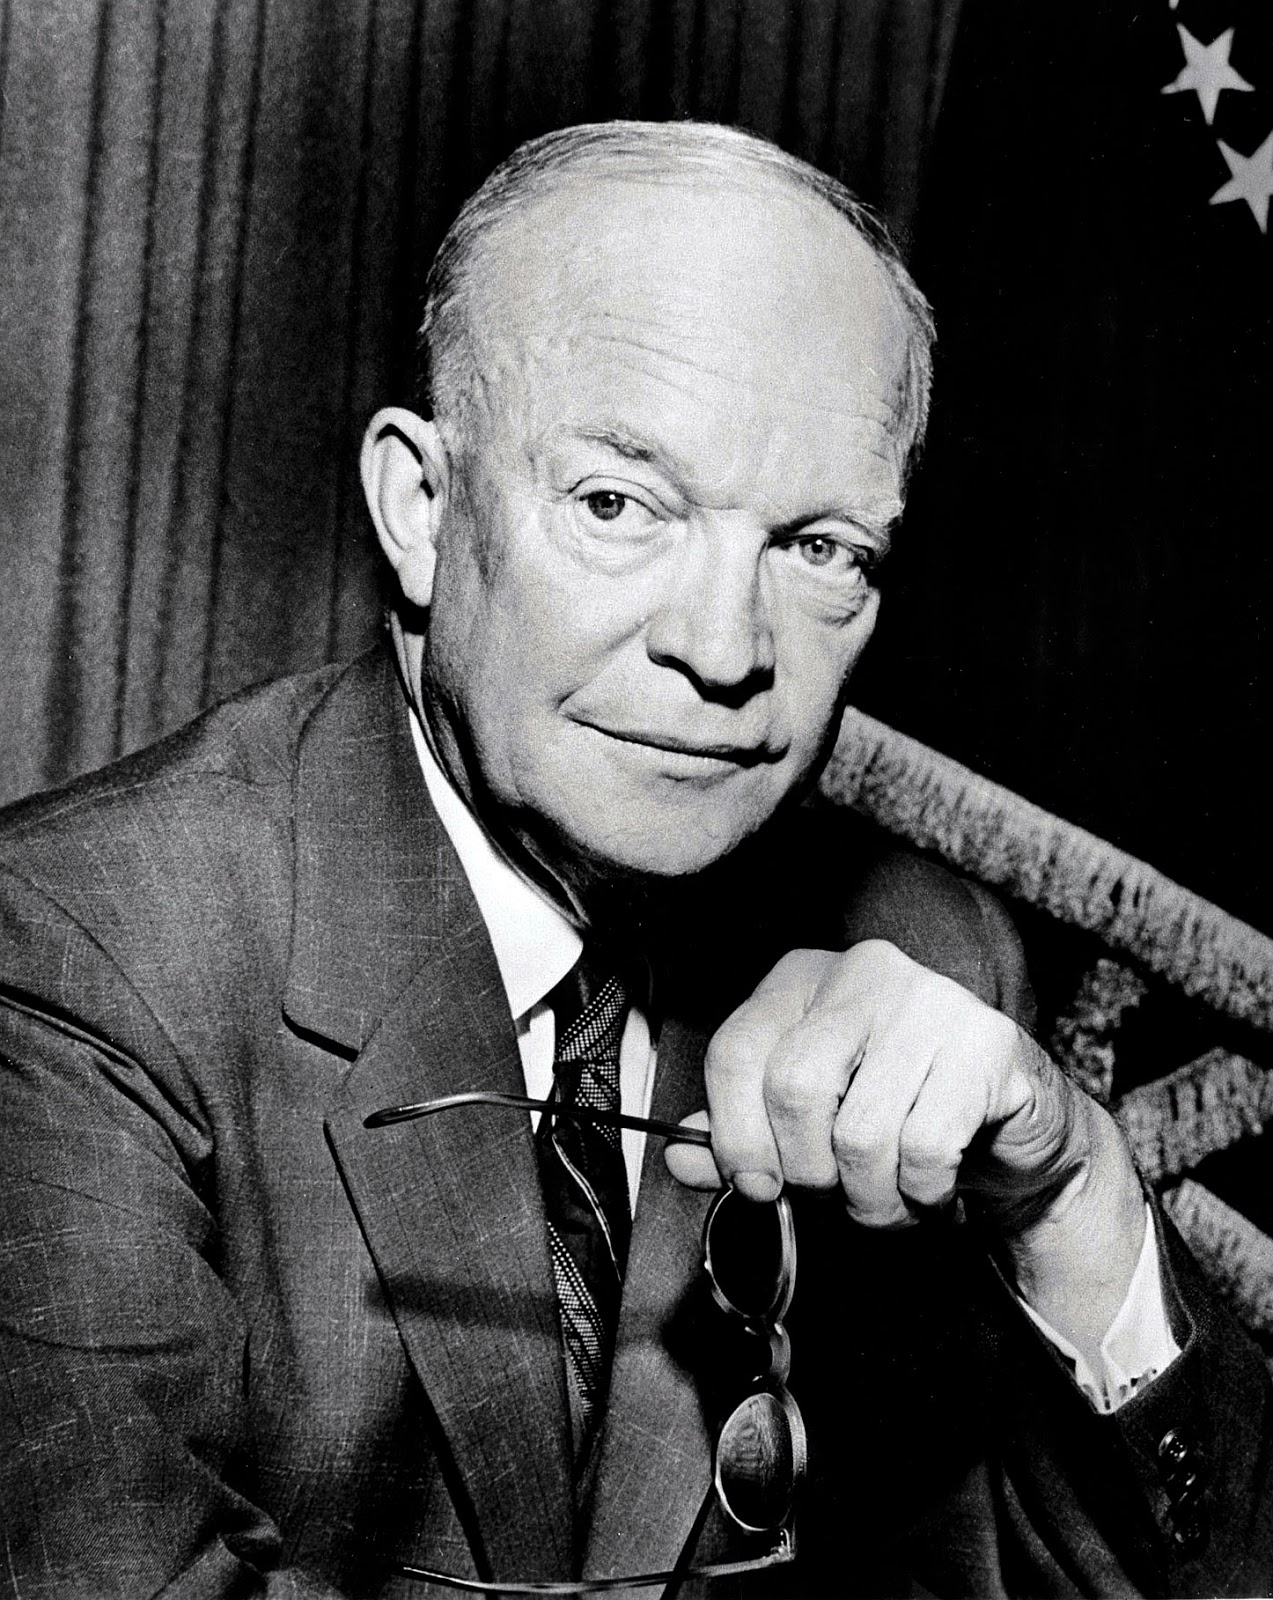 eisenhower presidency Bringing to the presidency his prestige as commanding general of the victorious forces in europe during world war ii, dwight d eisenhower obtained a truce in korea and worked incessantly during .